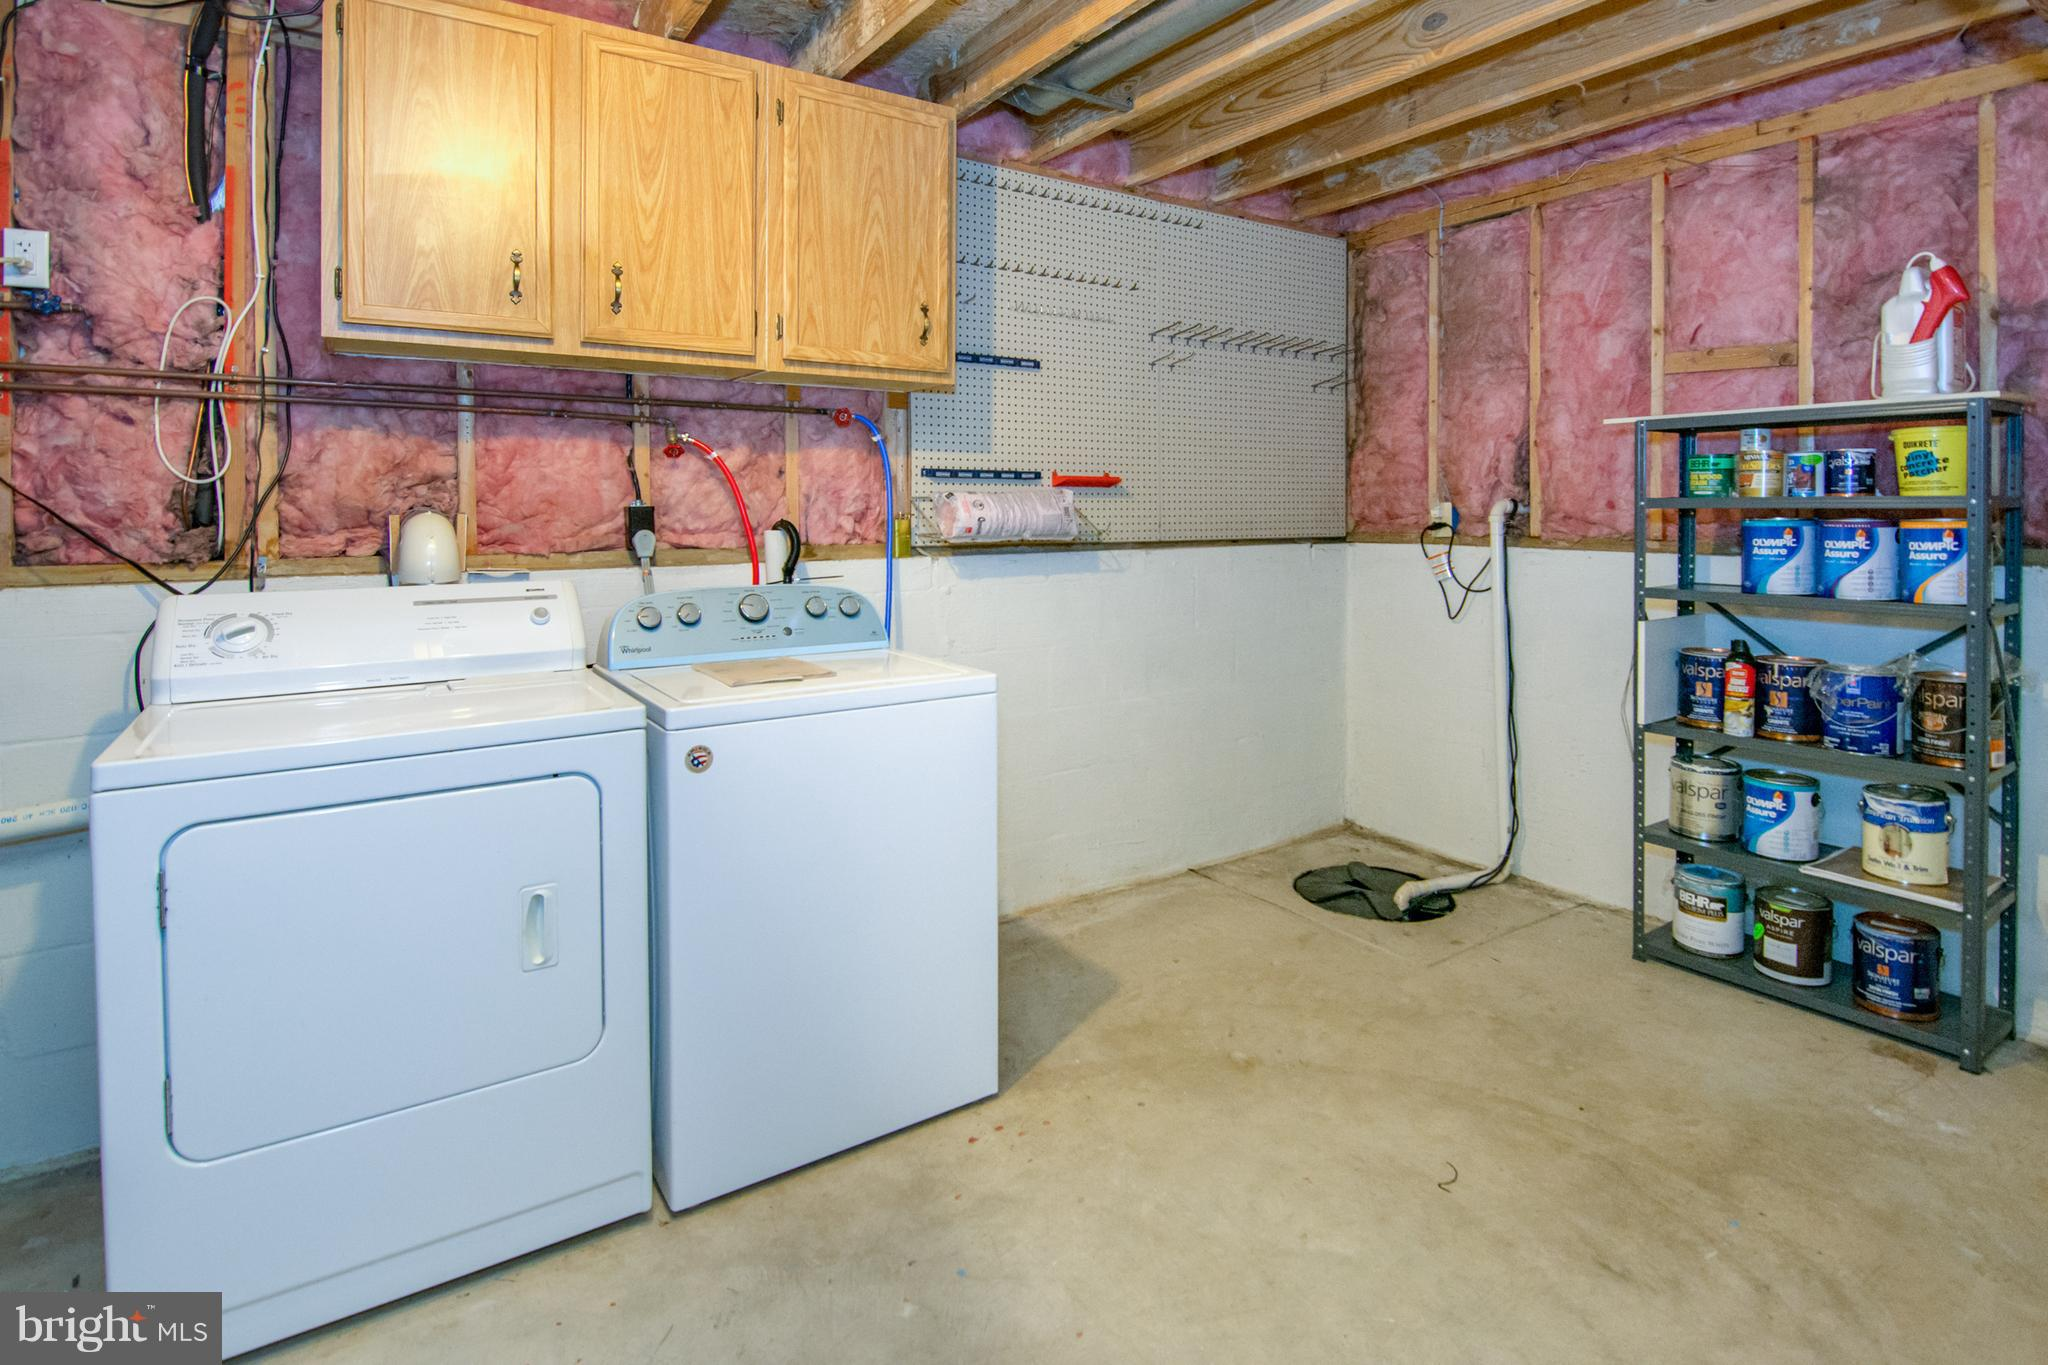 9033 SCOTTS HAVEN DR, Baltimore, MD 21234 $258,000 www